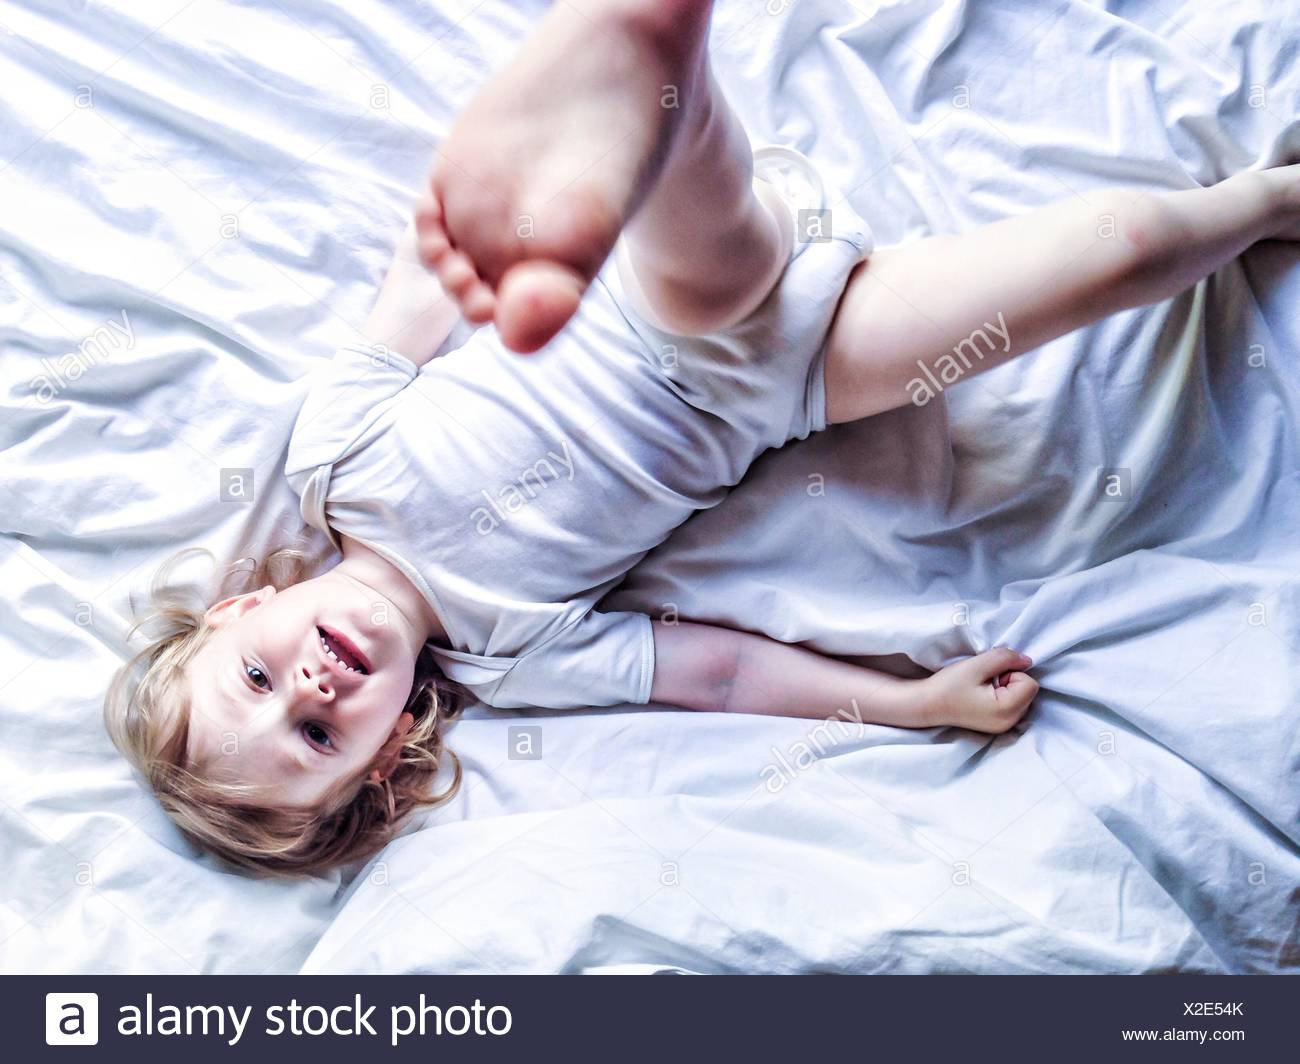 Boy lying on bed kicking his leg in the air - Stock Image